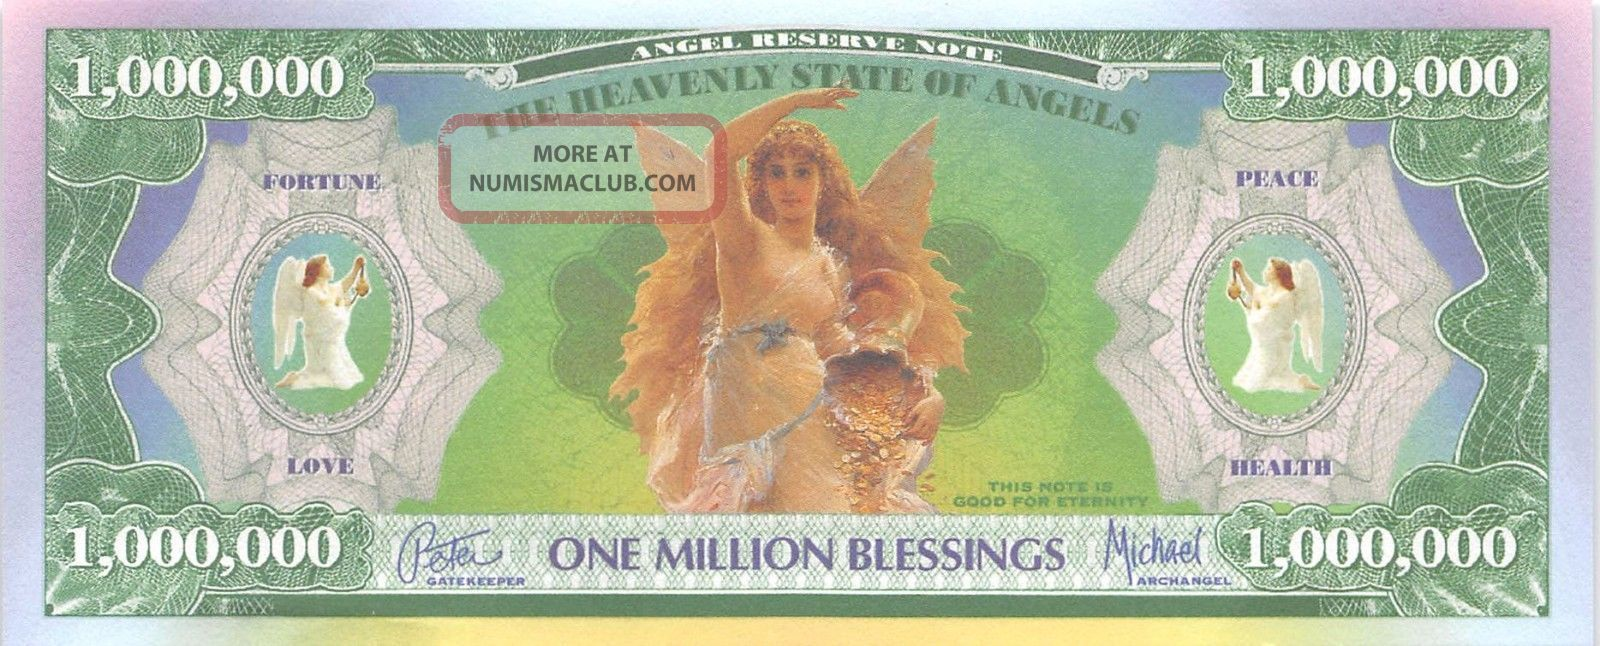 Usa / Angel Reserve Note 1 Million Blessing Uncirculated Banknote Paper Money: US photo